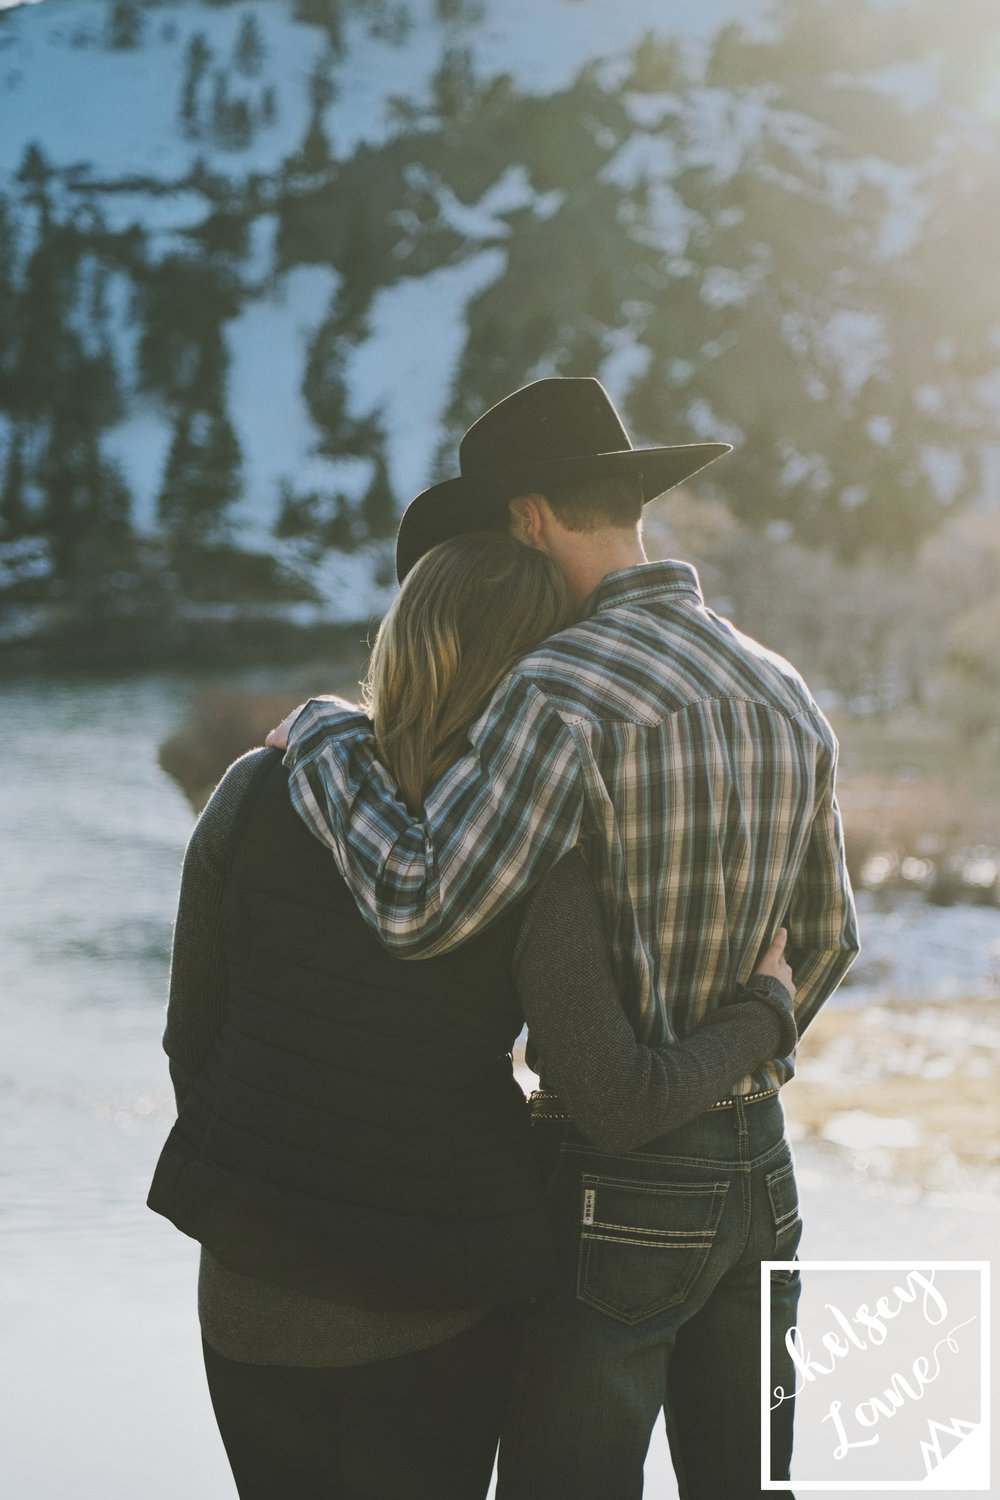 017 Montana River Engagement_Montana Wedding Photographer_Montana Engagement_Helena Engagement_Kelsey Lane Photography_Katlyn Kenyon + Jade Nystrom Engagement-9692.jpg